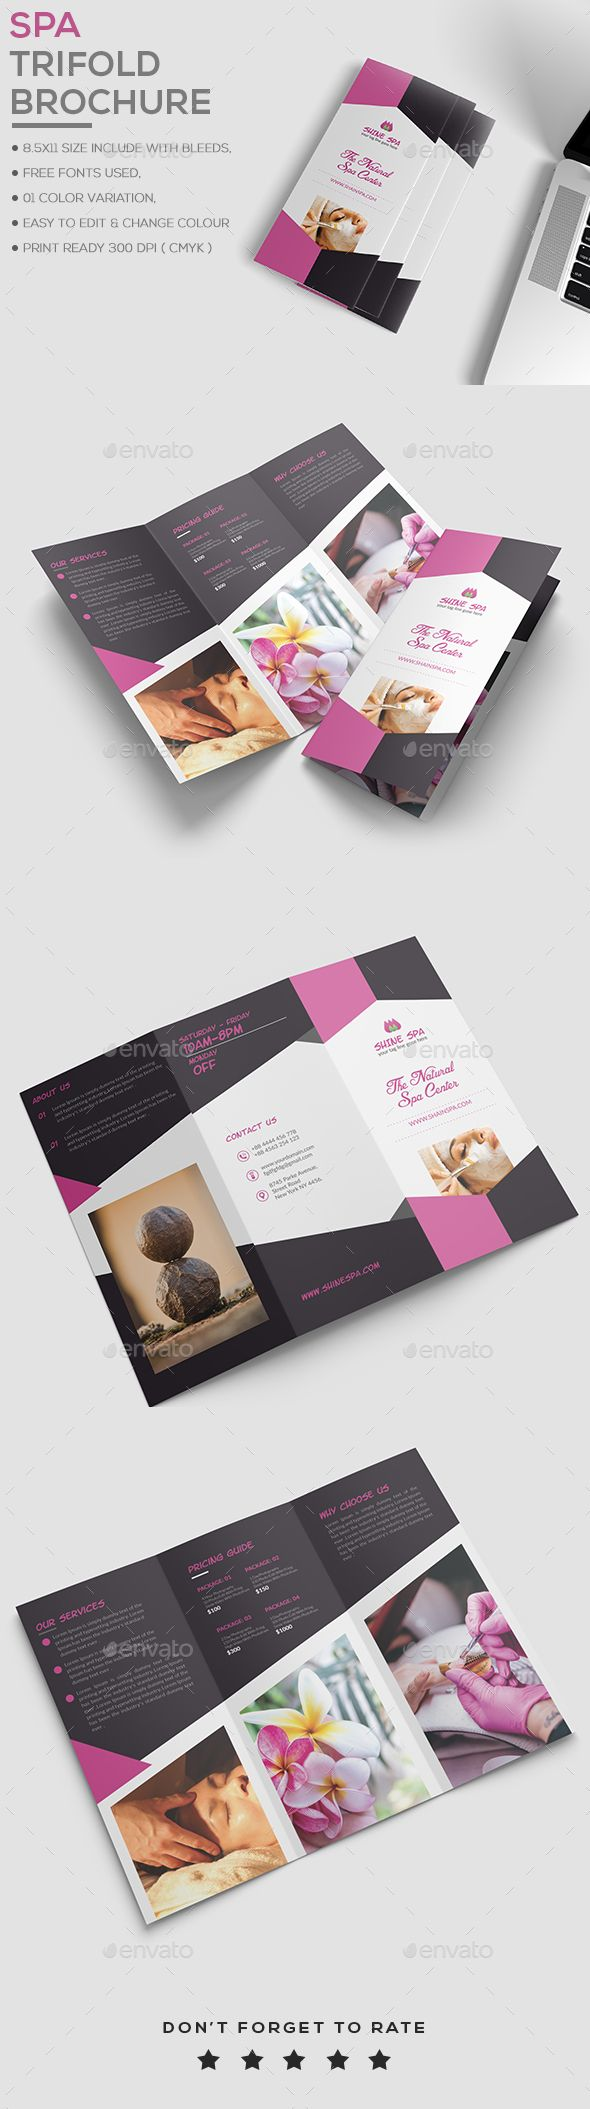 Spa Brochure Template  Brochure Template Brochures And Template